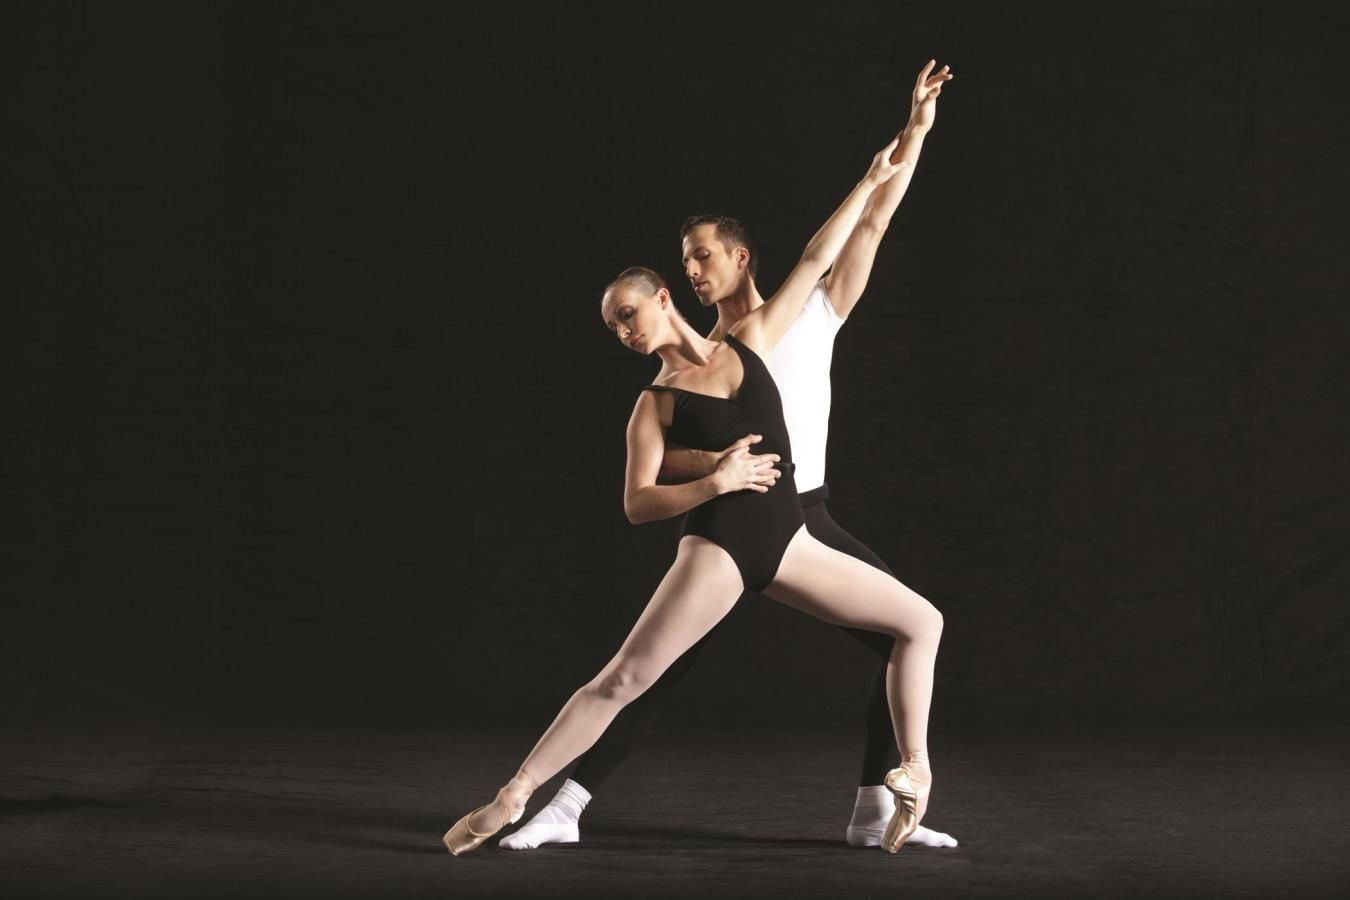 Miami City Ballet dancers Callie Manning and Neil Marshall in Episodes. Choreography by George Balan